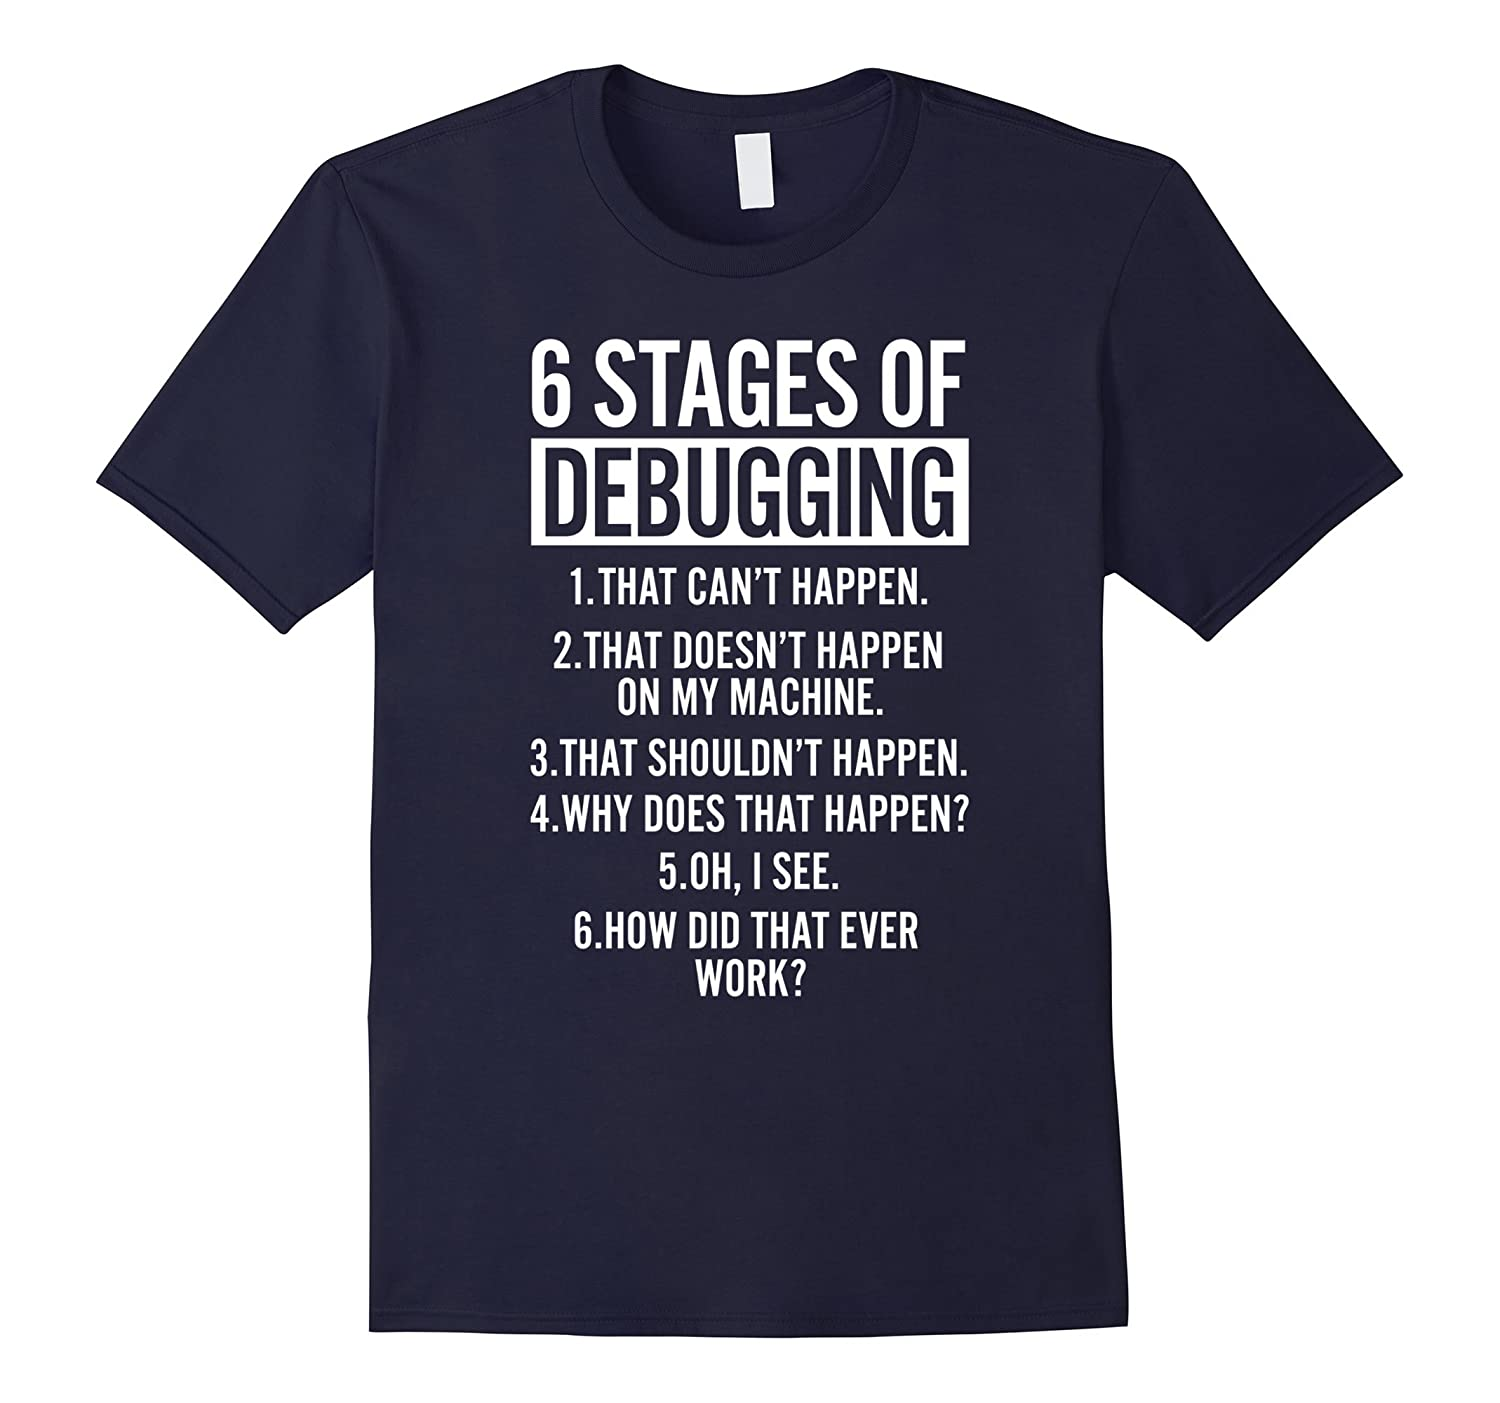 6 Stages Of Debugging: Funny IT T-Shirt For Geeks, Nerds-Rose